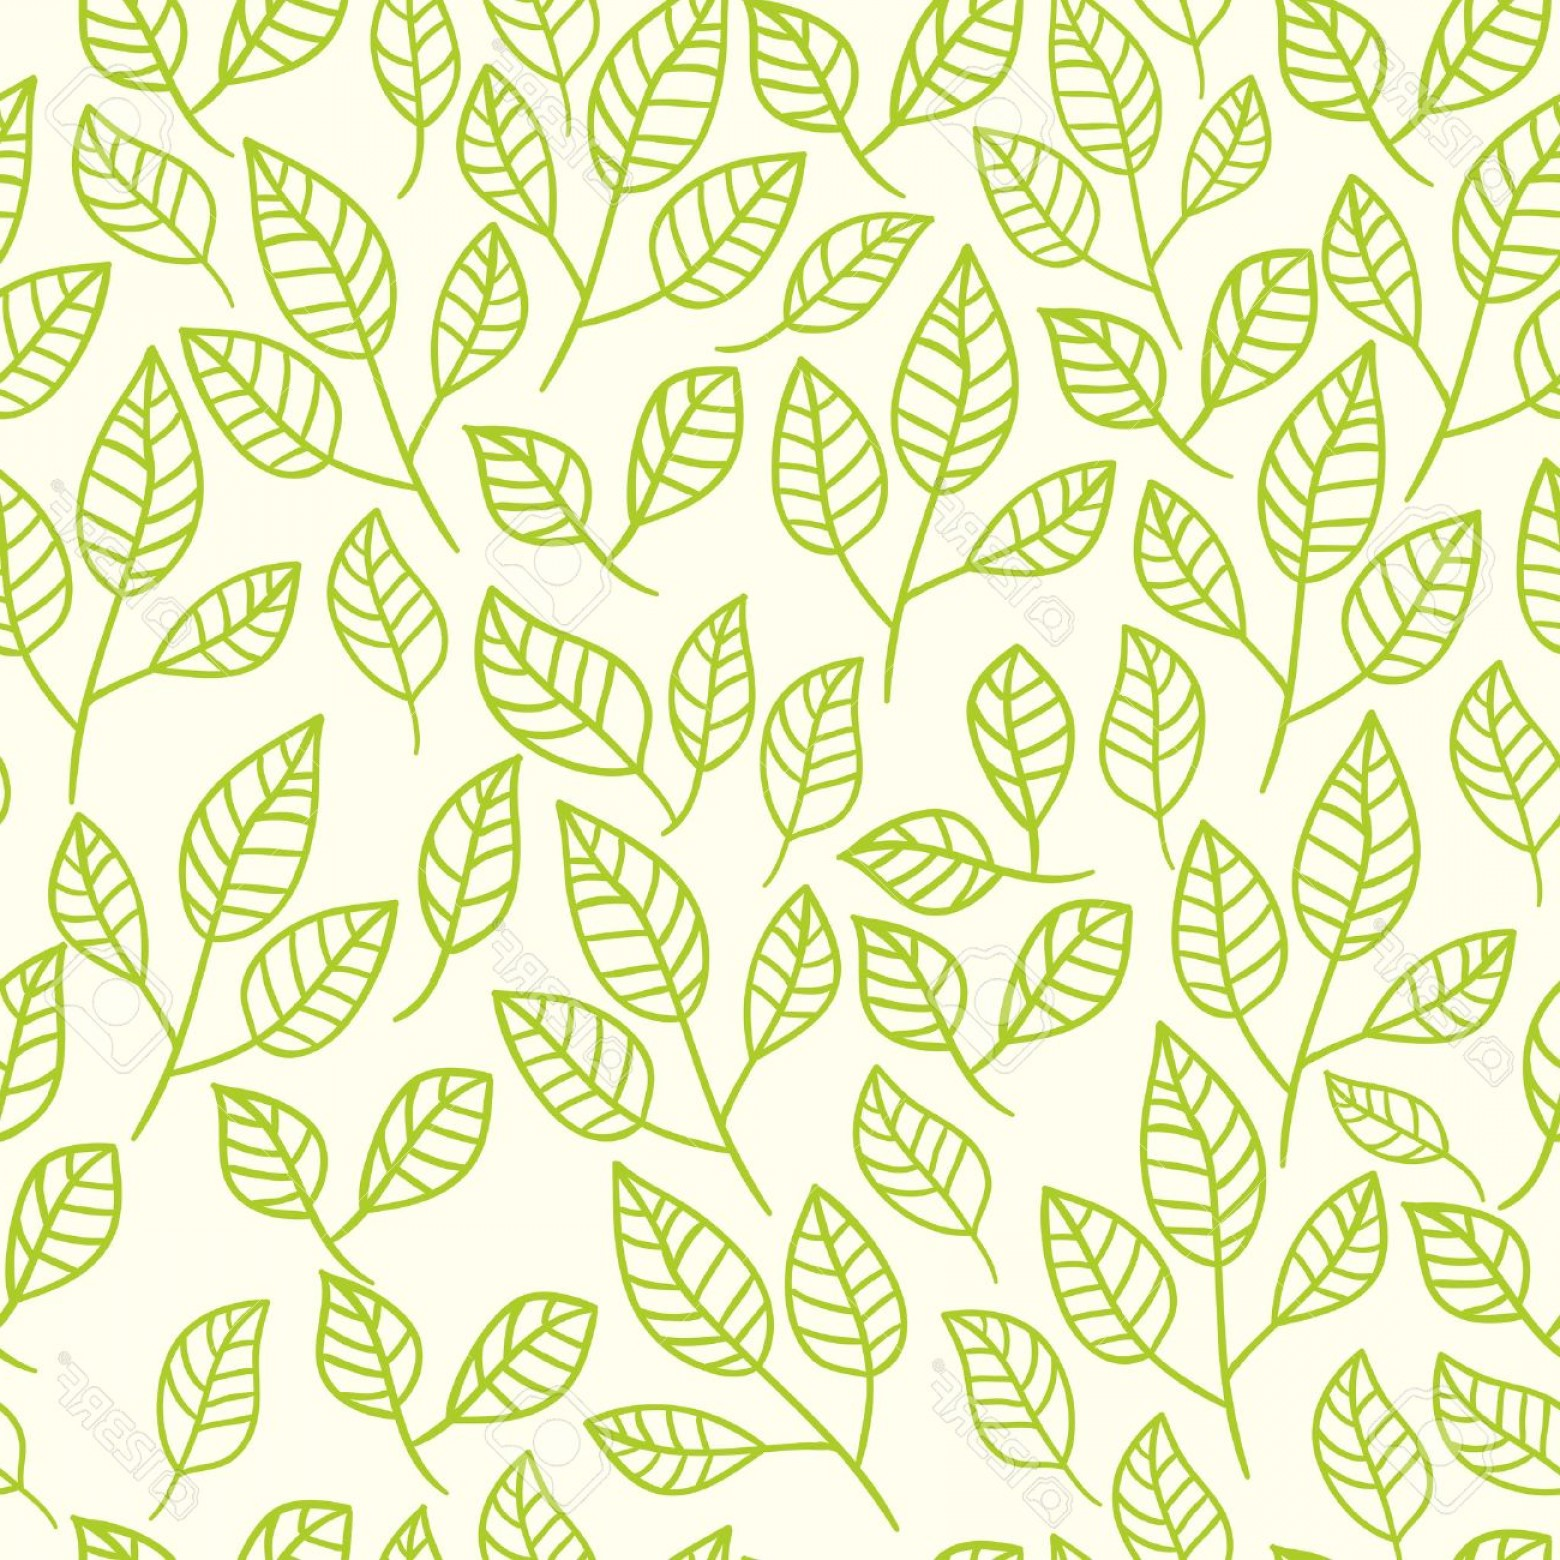 Leaf Background Vector: Photostock Vector Seamless Watercolor Background Of Green Leaves Pattern Composed Of Tea Leaves Vector Pattern